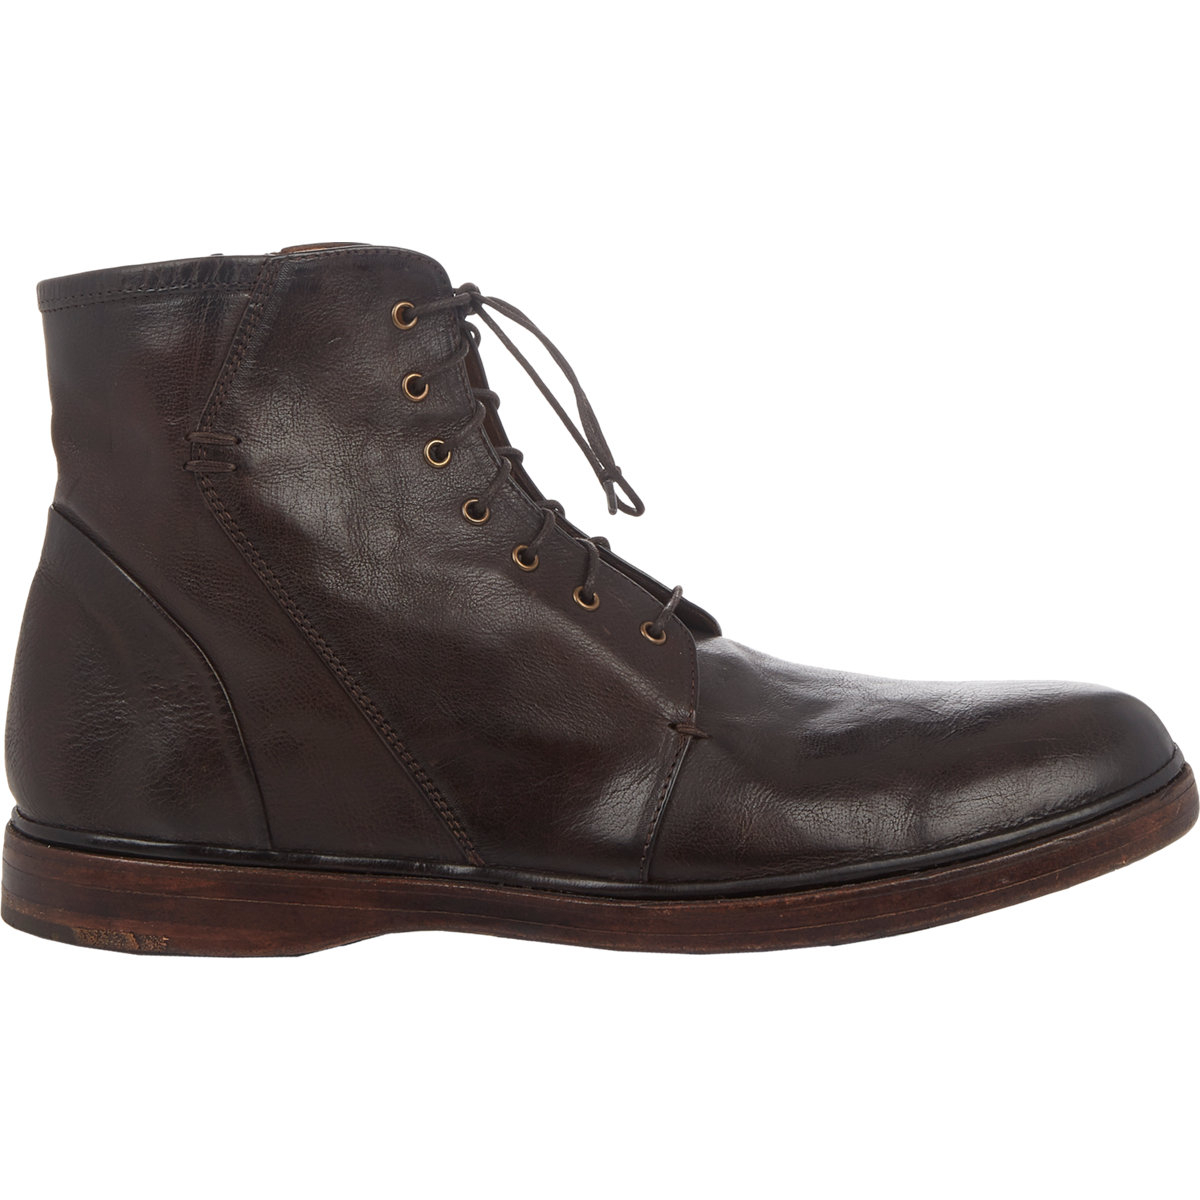 Elia Maurizi Side Zip Boots In Brown For Men Lyst